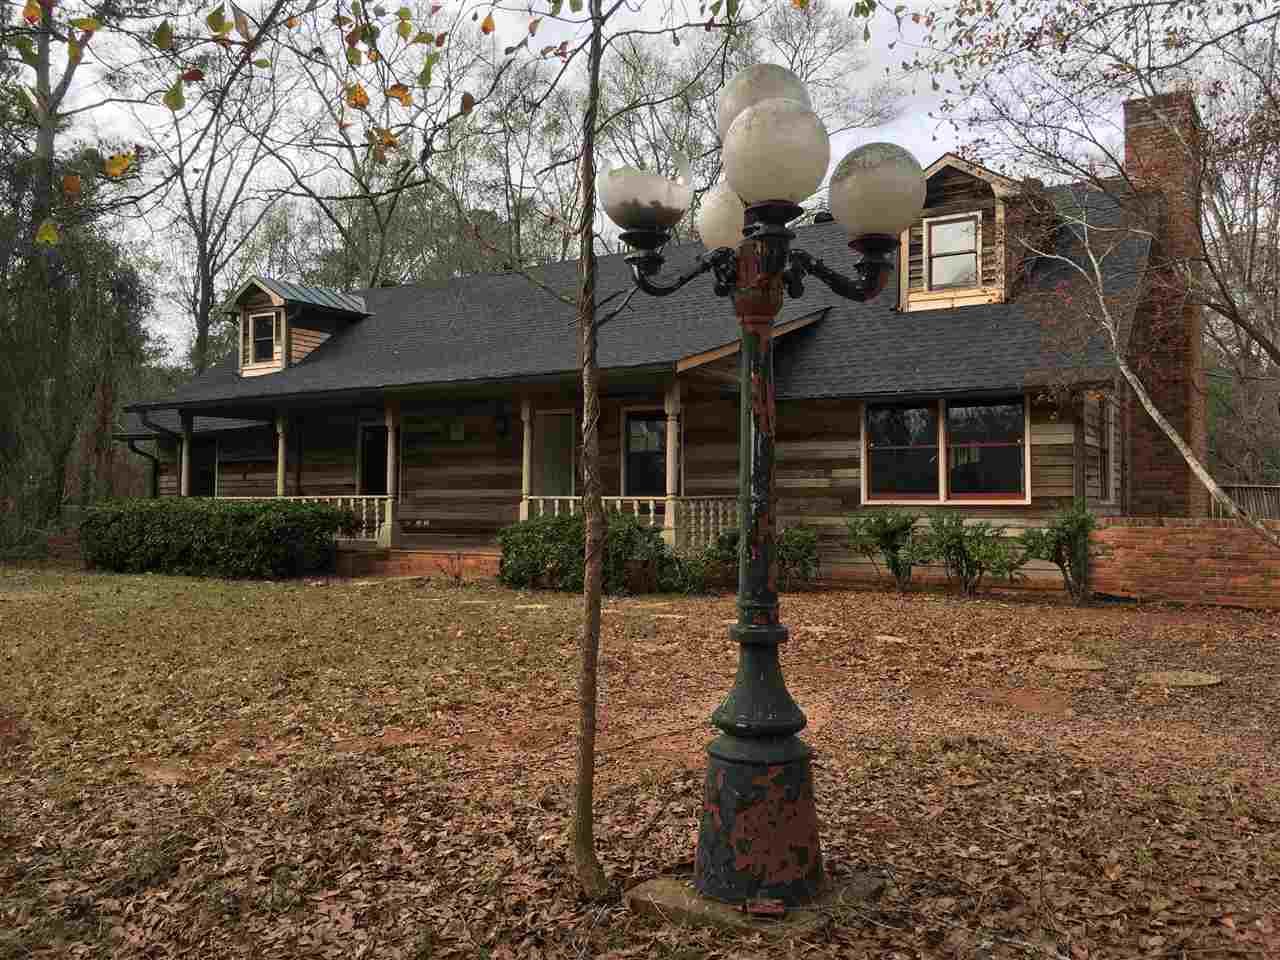 71 AMY LANE, FORT VALLEY, GA 31030